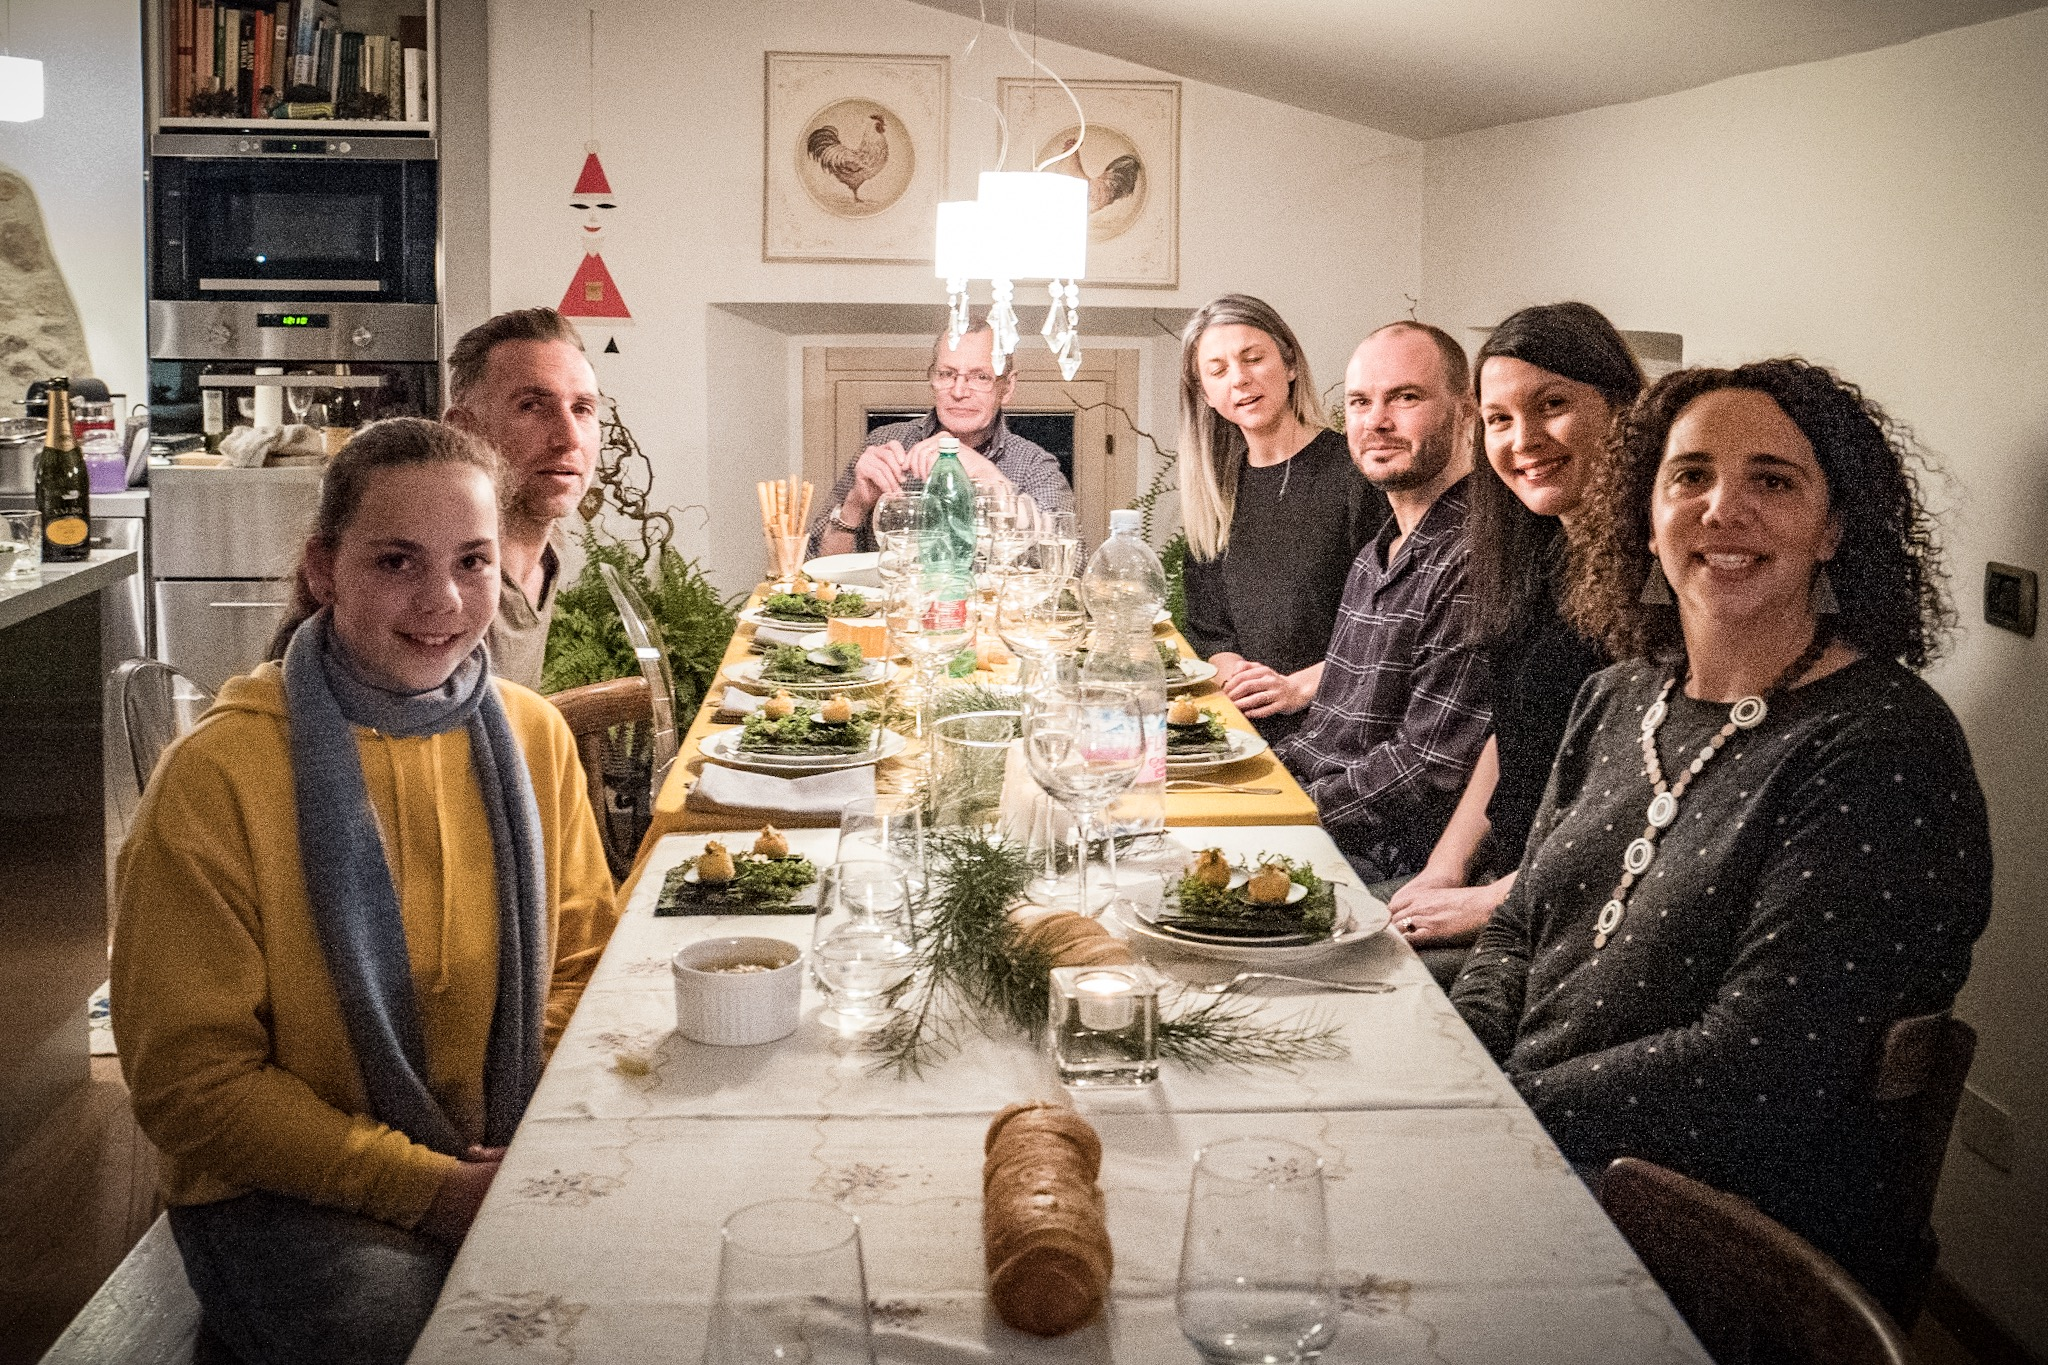 And the Xmas table, sitting down for one of the many meals on Xmas Day.